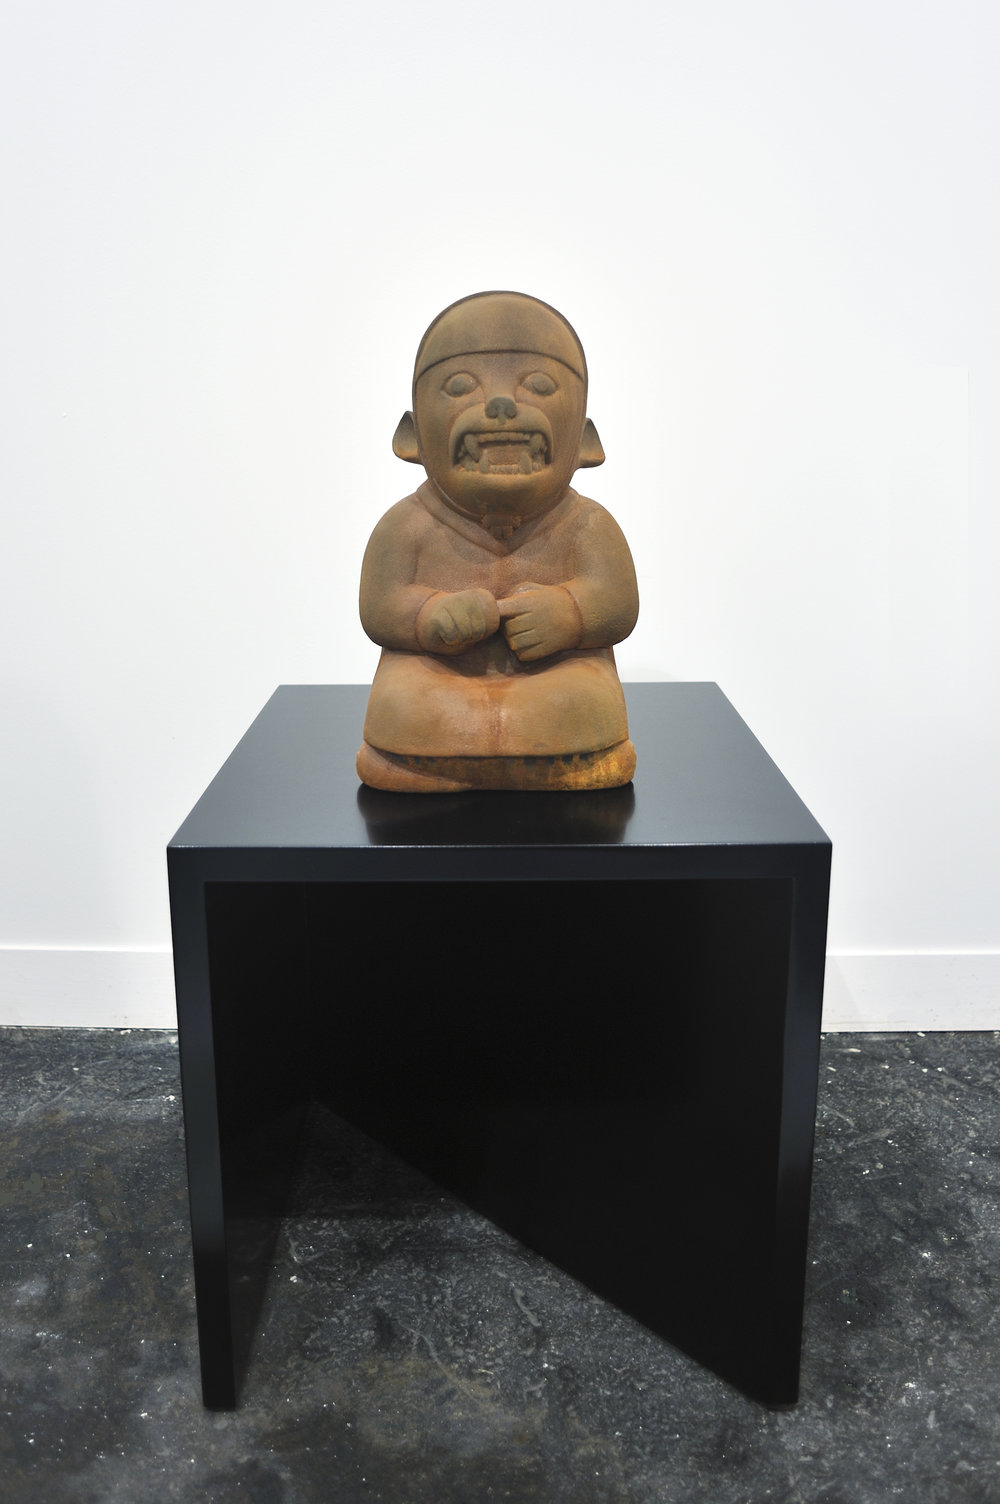 It Is What It Is (The Old-In-and-Out), 2009 terracotta, wood, paint 89 x 45,7 x 45,7 cm - 35 x 18 x 18 inches